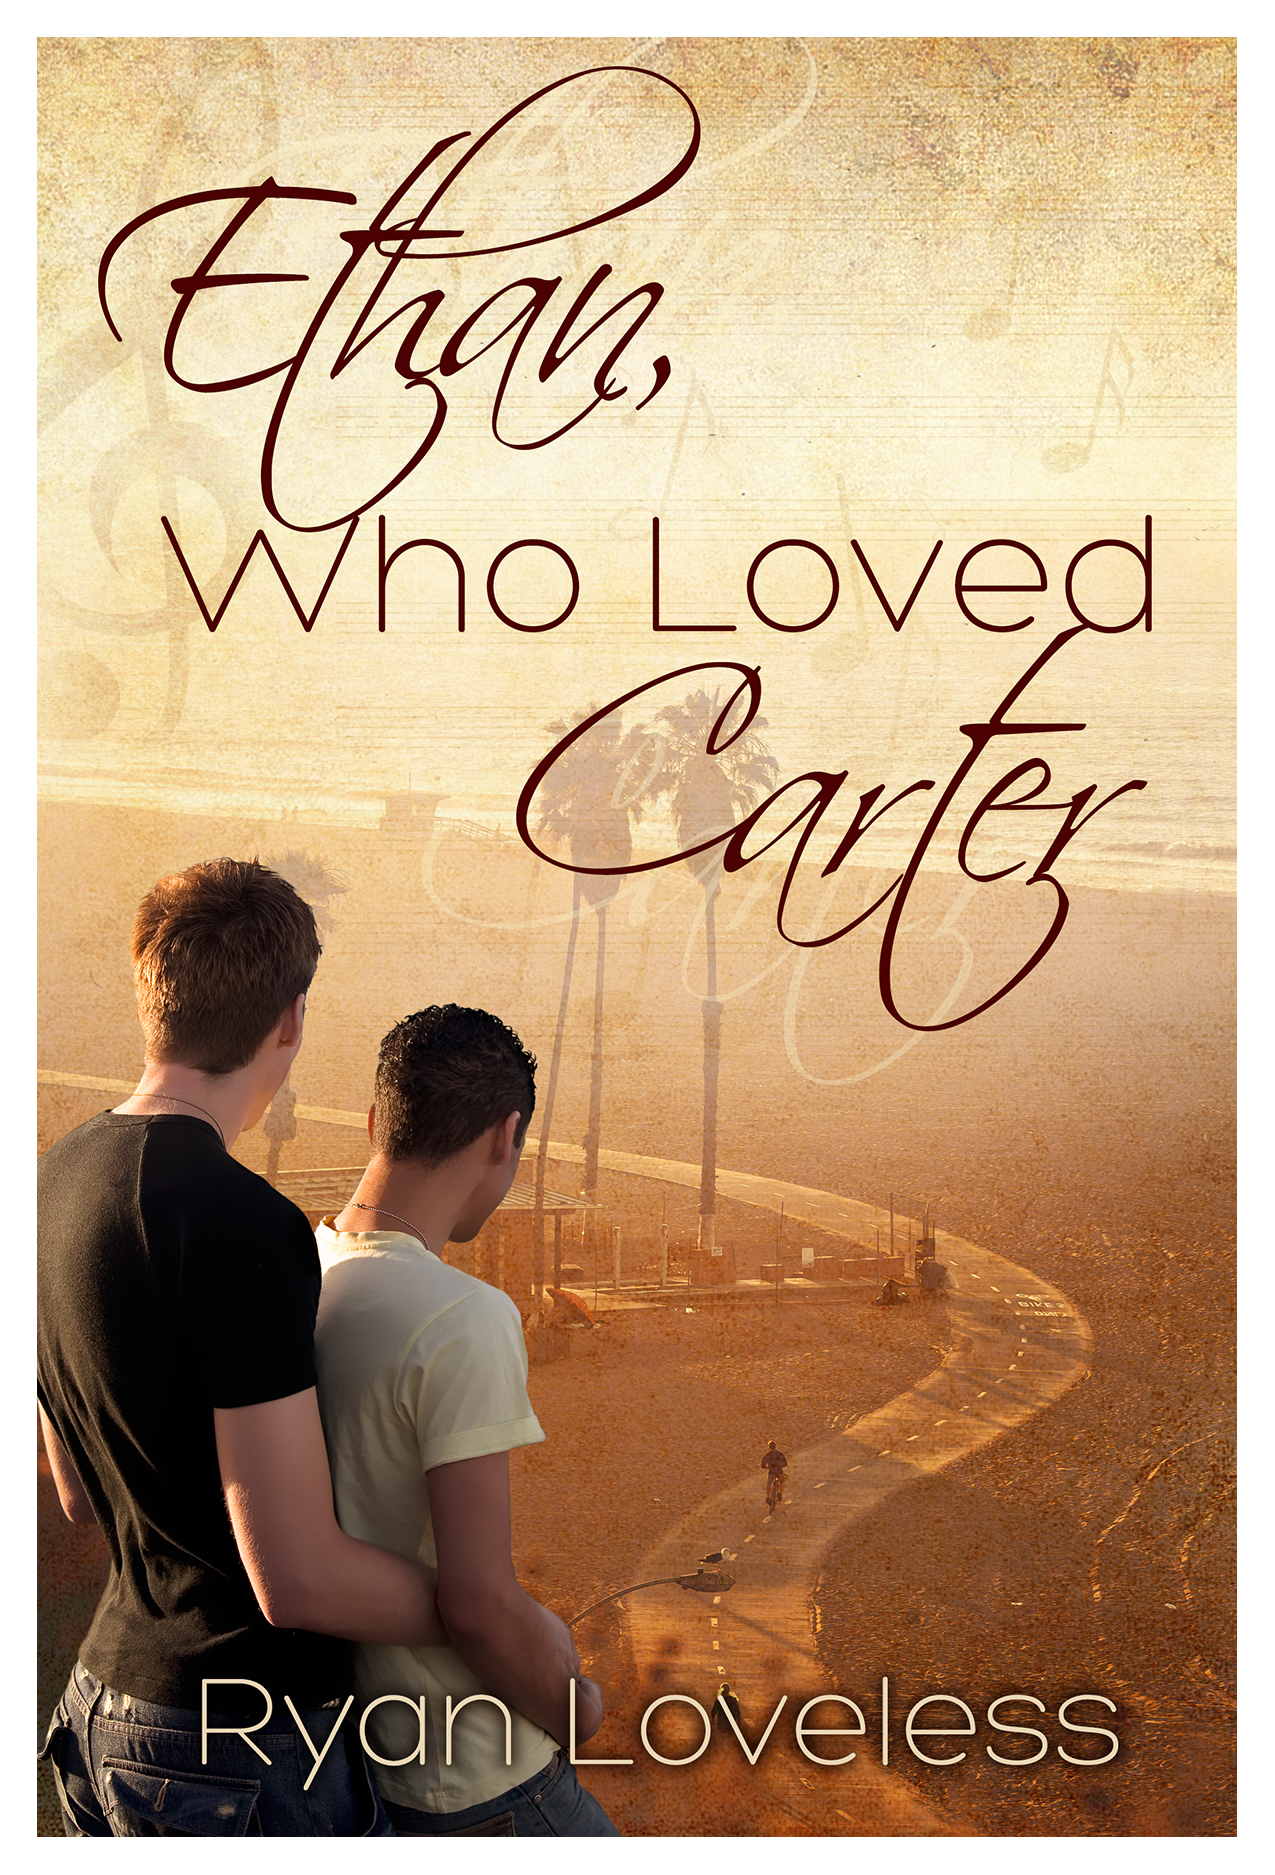 Guest Post and Giveaway: Ethan, Who Loved Carter by Ryan Loveless